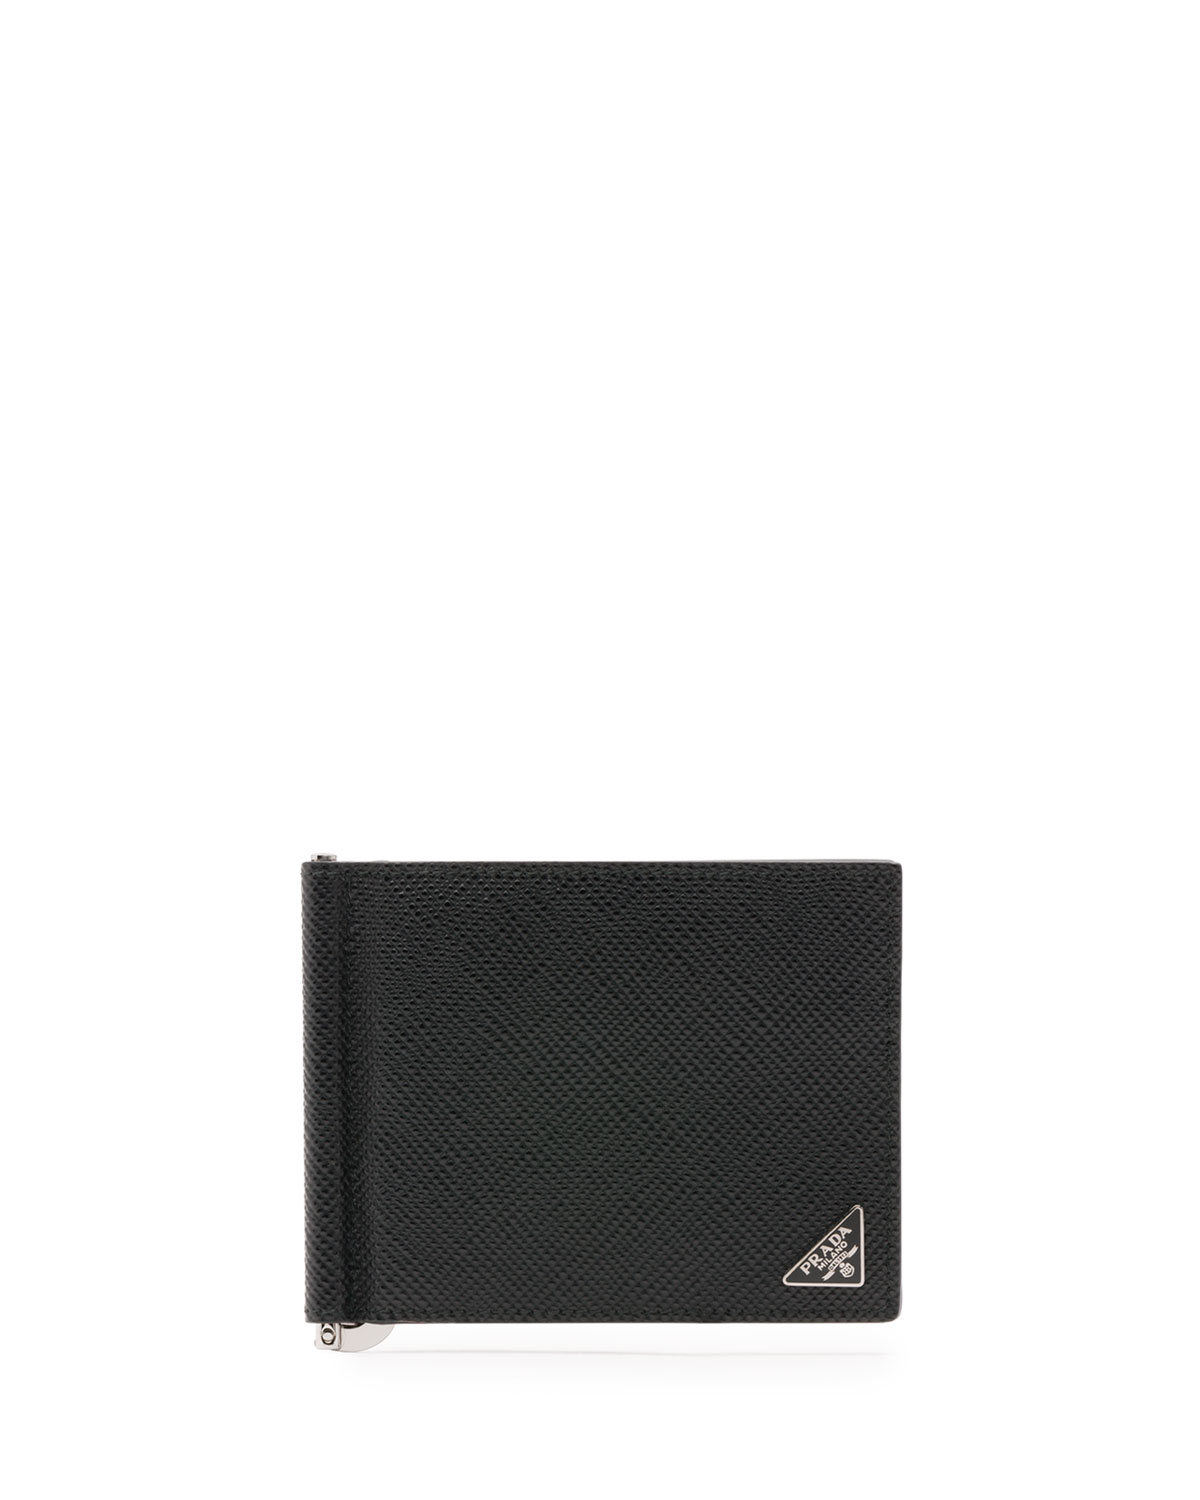 96a2117a921ffd Prada Saffiano Leather Money-Clip Wallet | Neiman Marcus